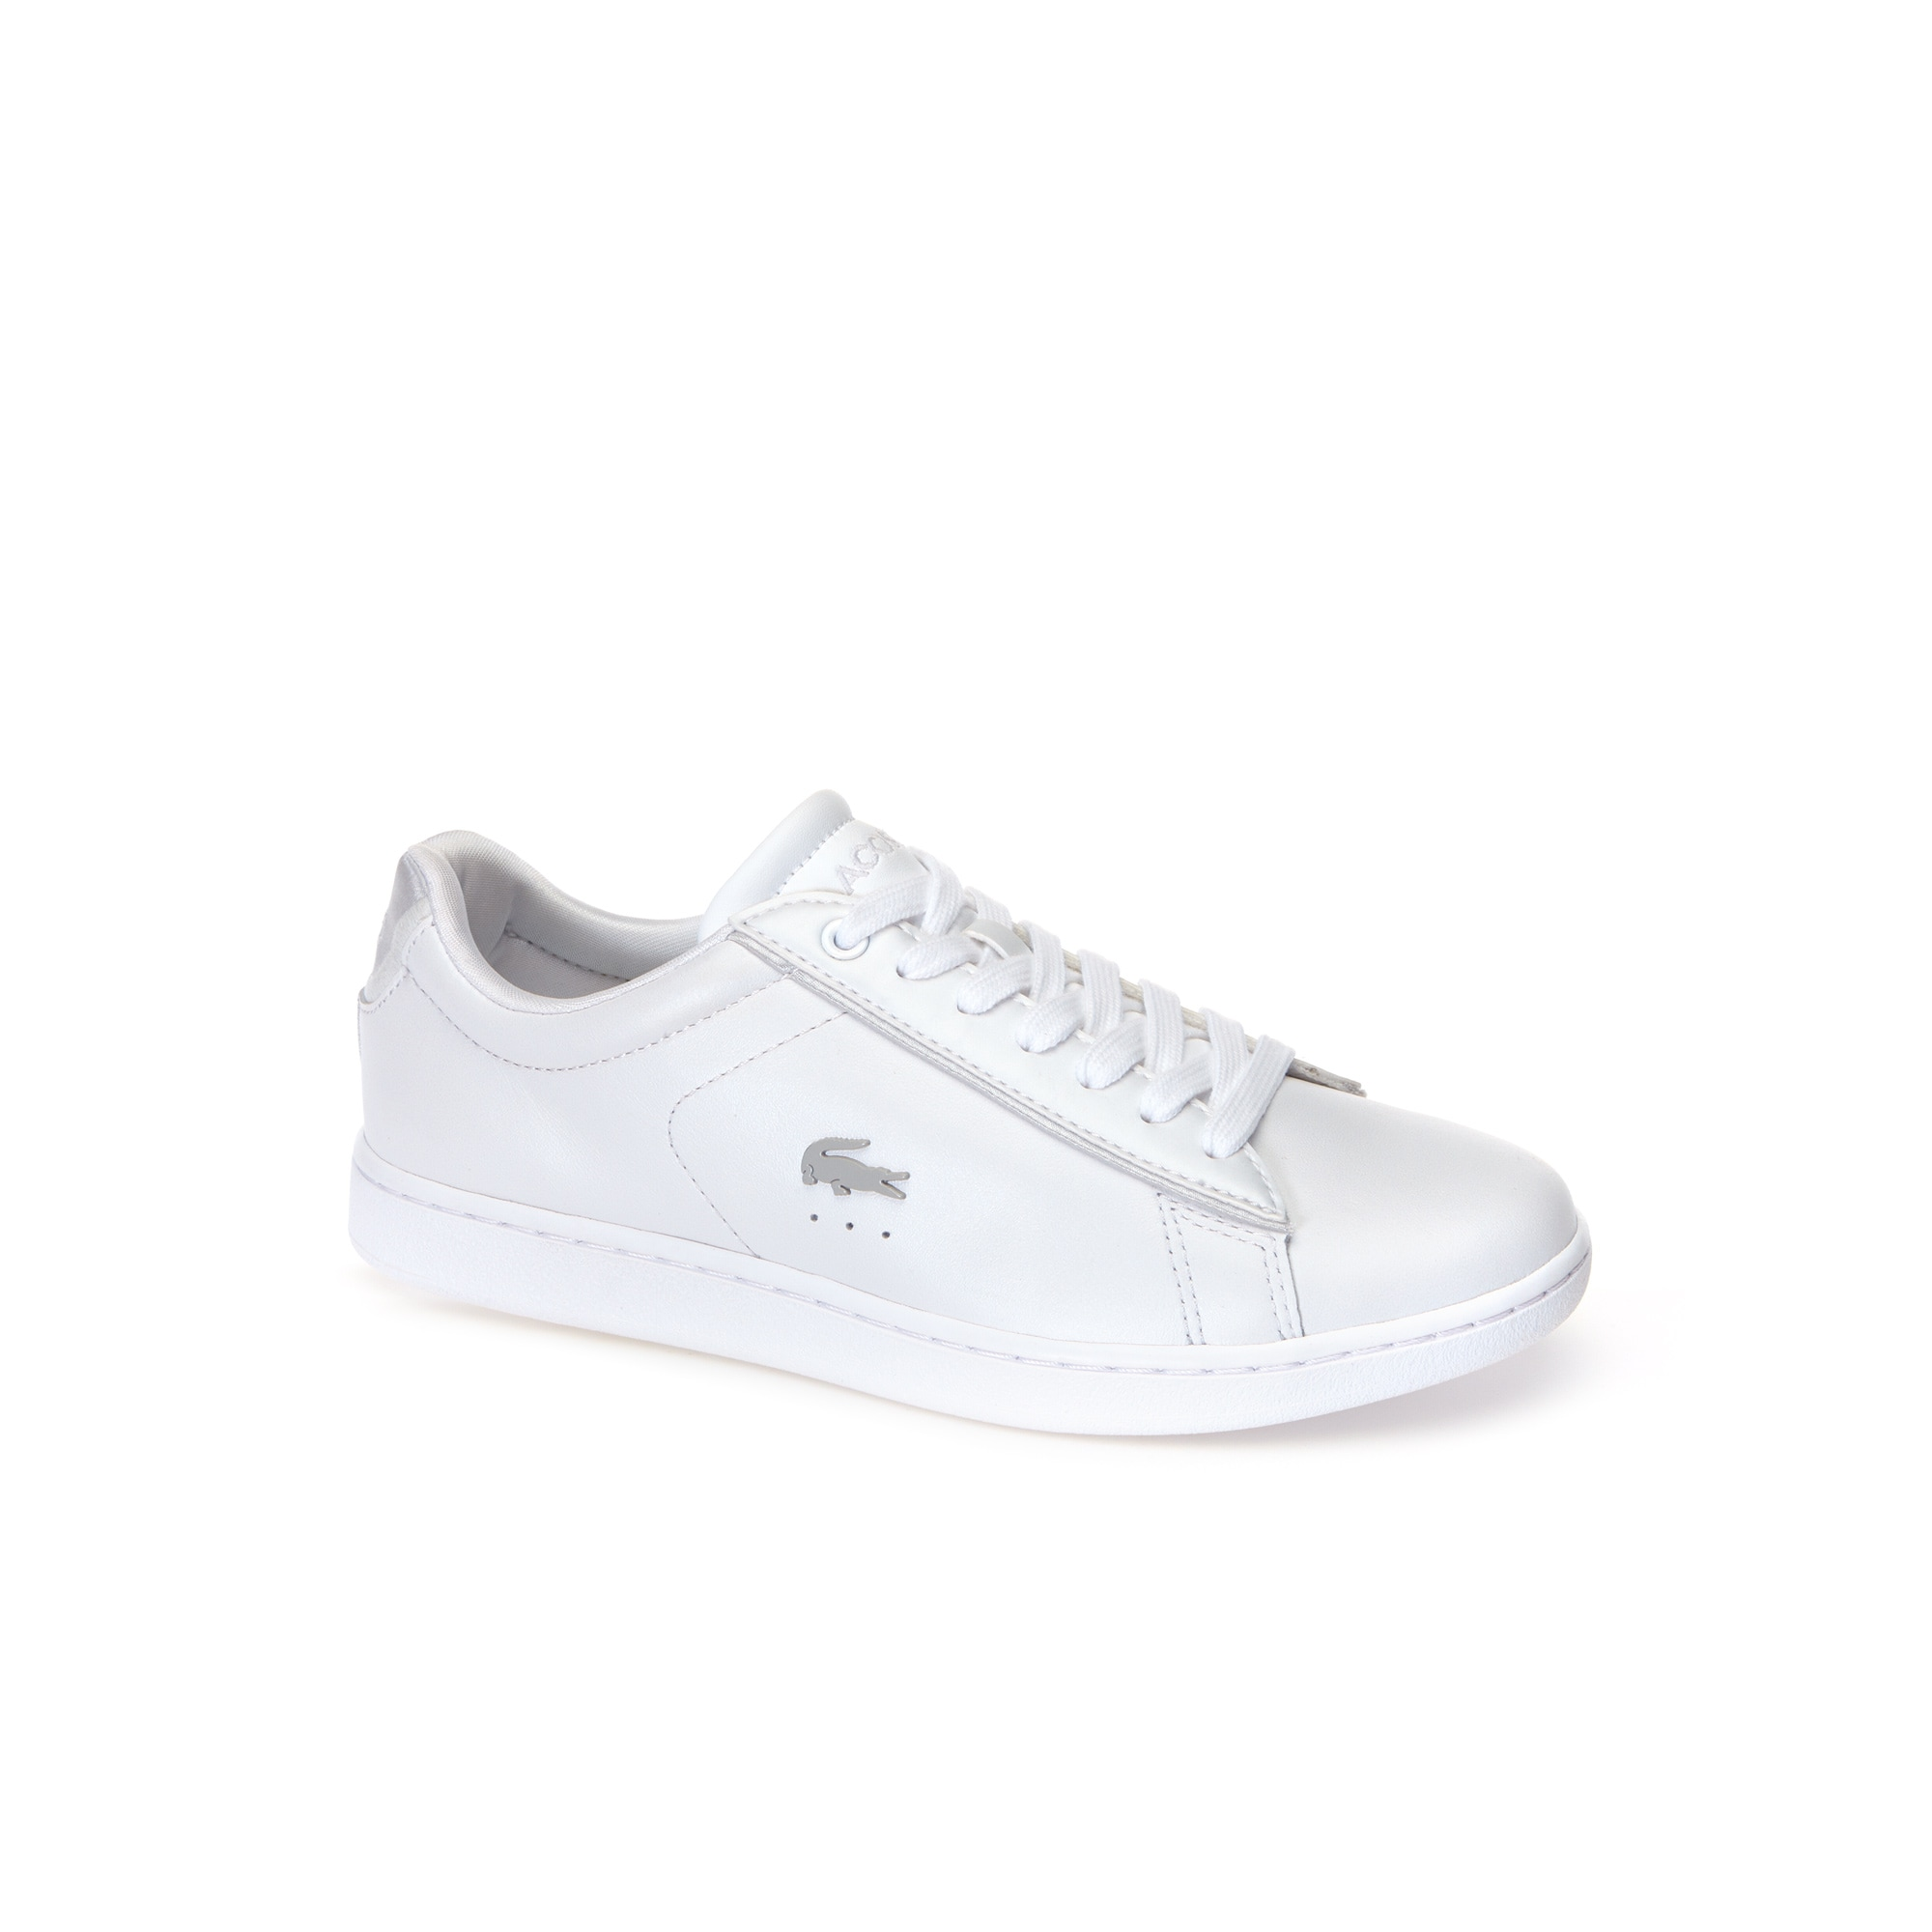 Femme Sneakers Chaussures Sneakers Chaussures Lacoste Femme Lacoste Sneakers wq8txPdq